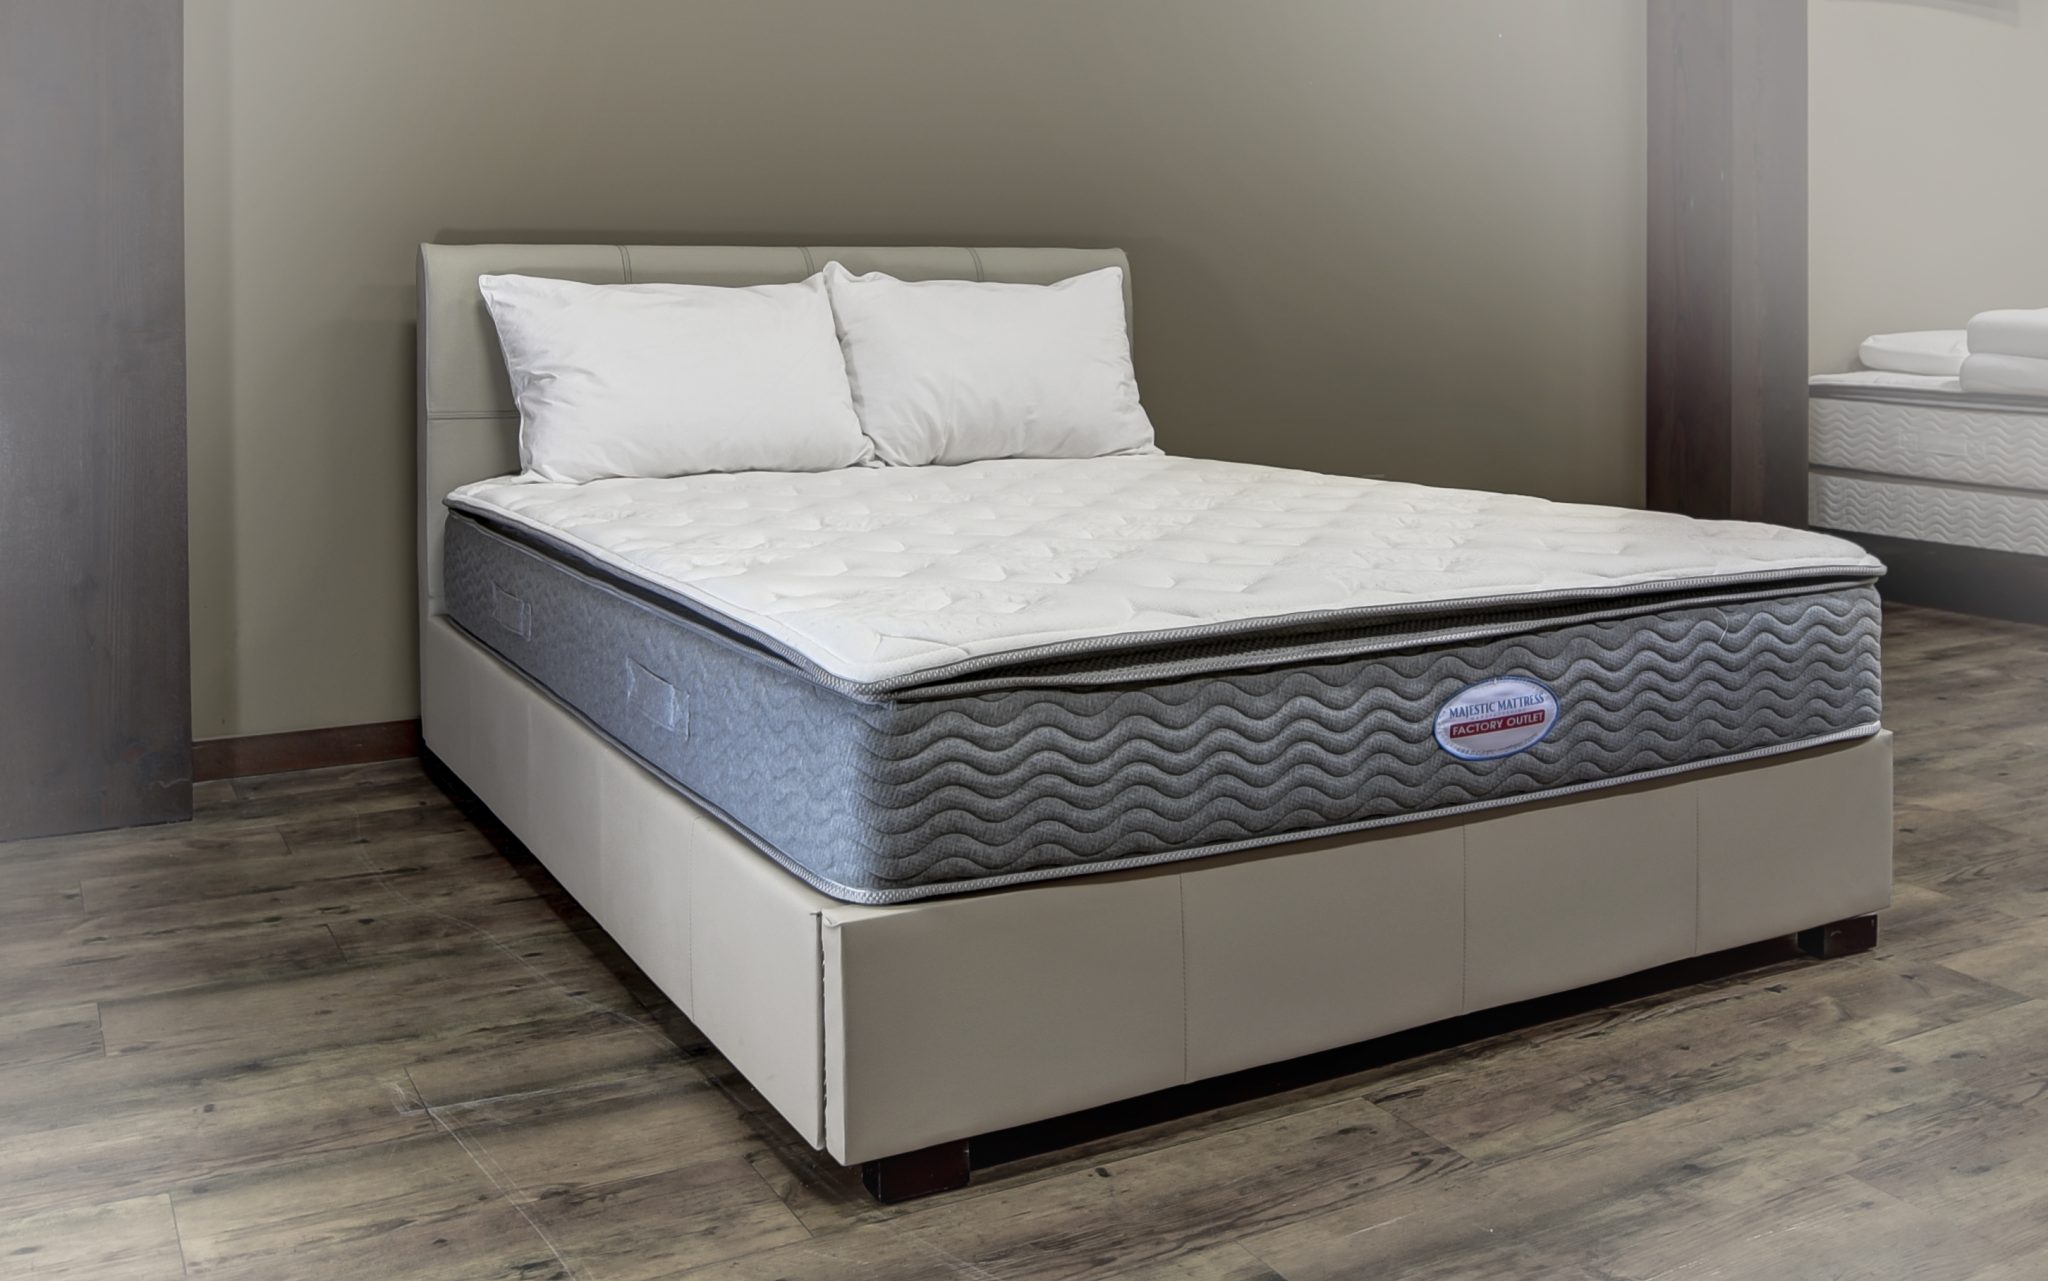 Pacifica Majestic Mattress Your Bedroom Furniture Outlet